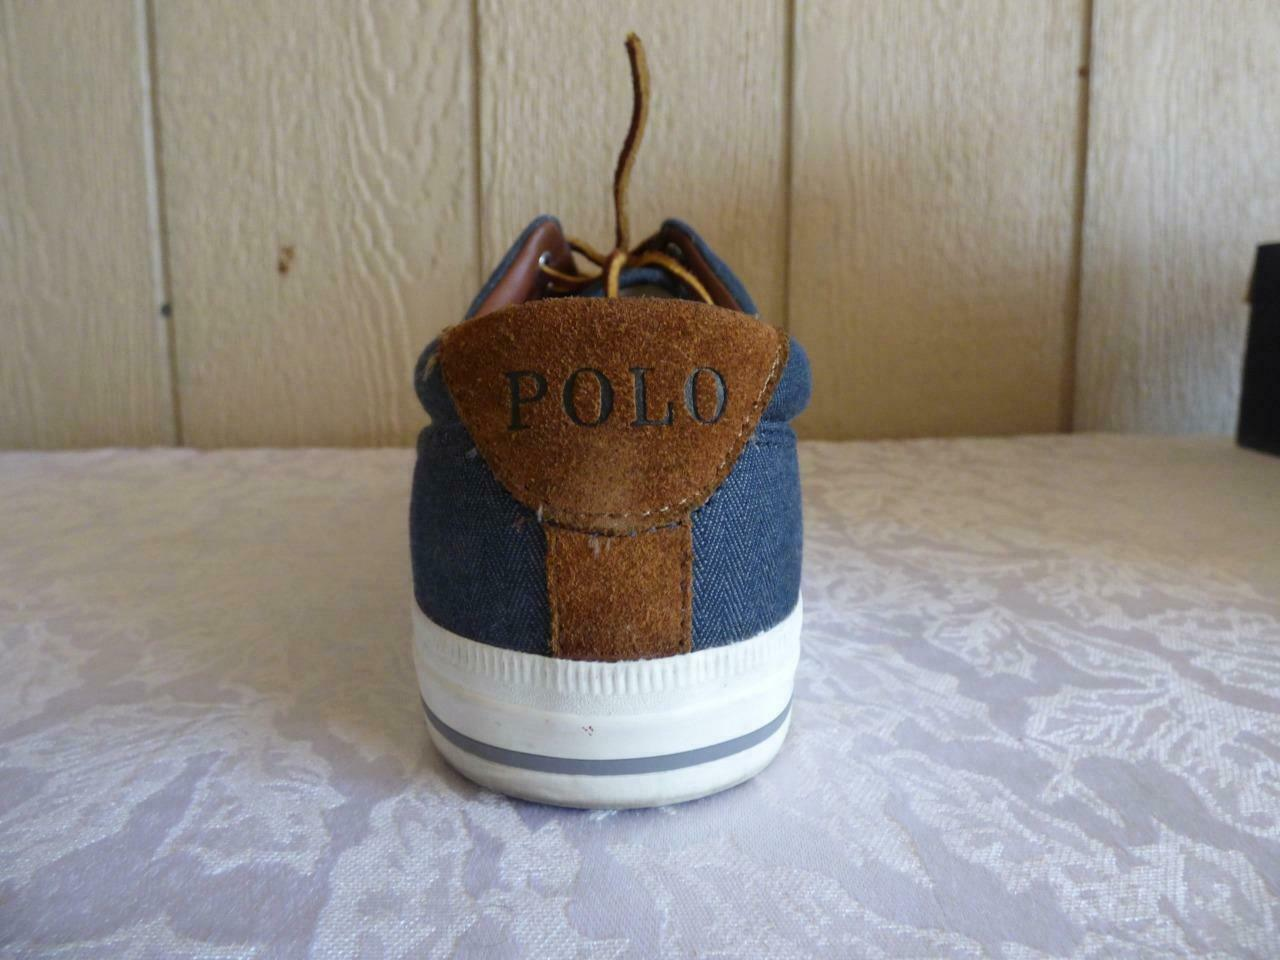 Polo Ralph Lauren Vaughn Lace Sneakers, Denim, Herringbone Chambray, US 10.5 D